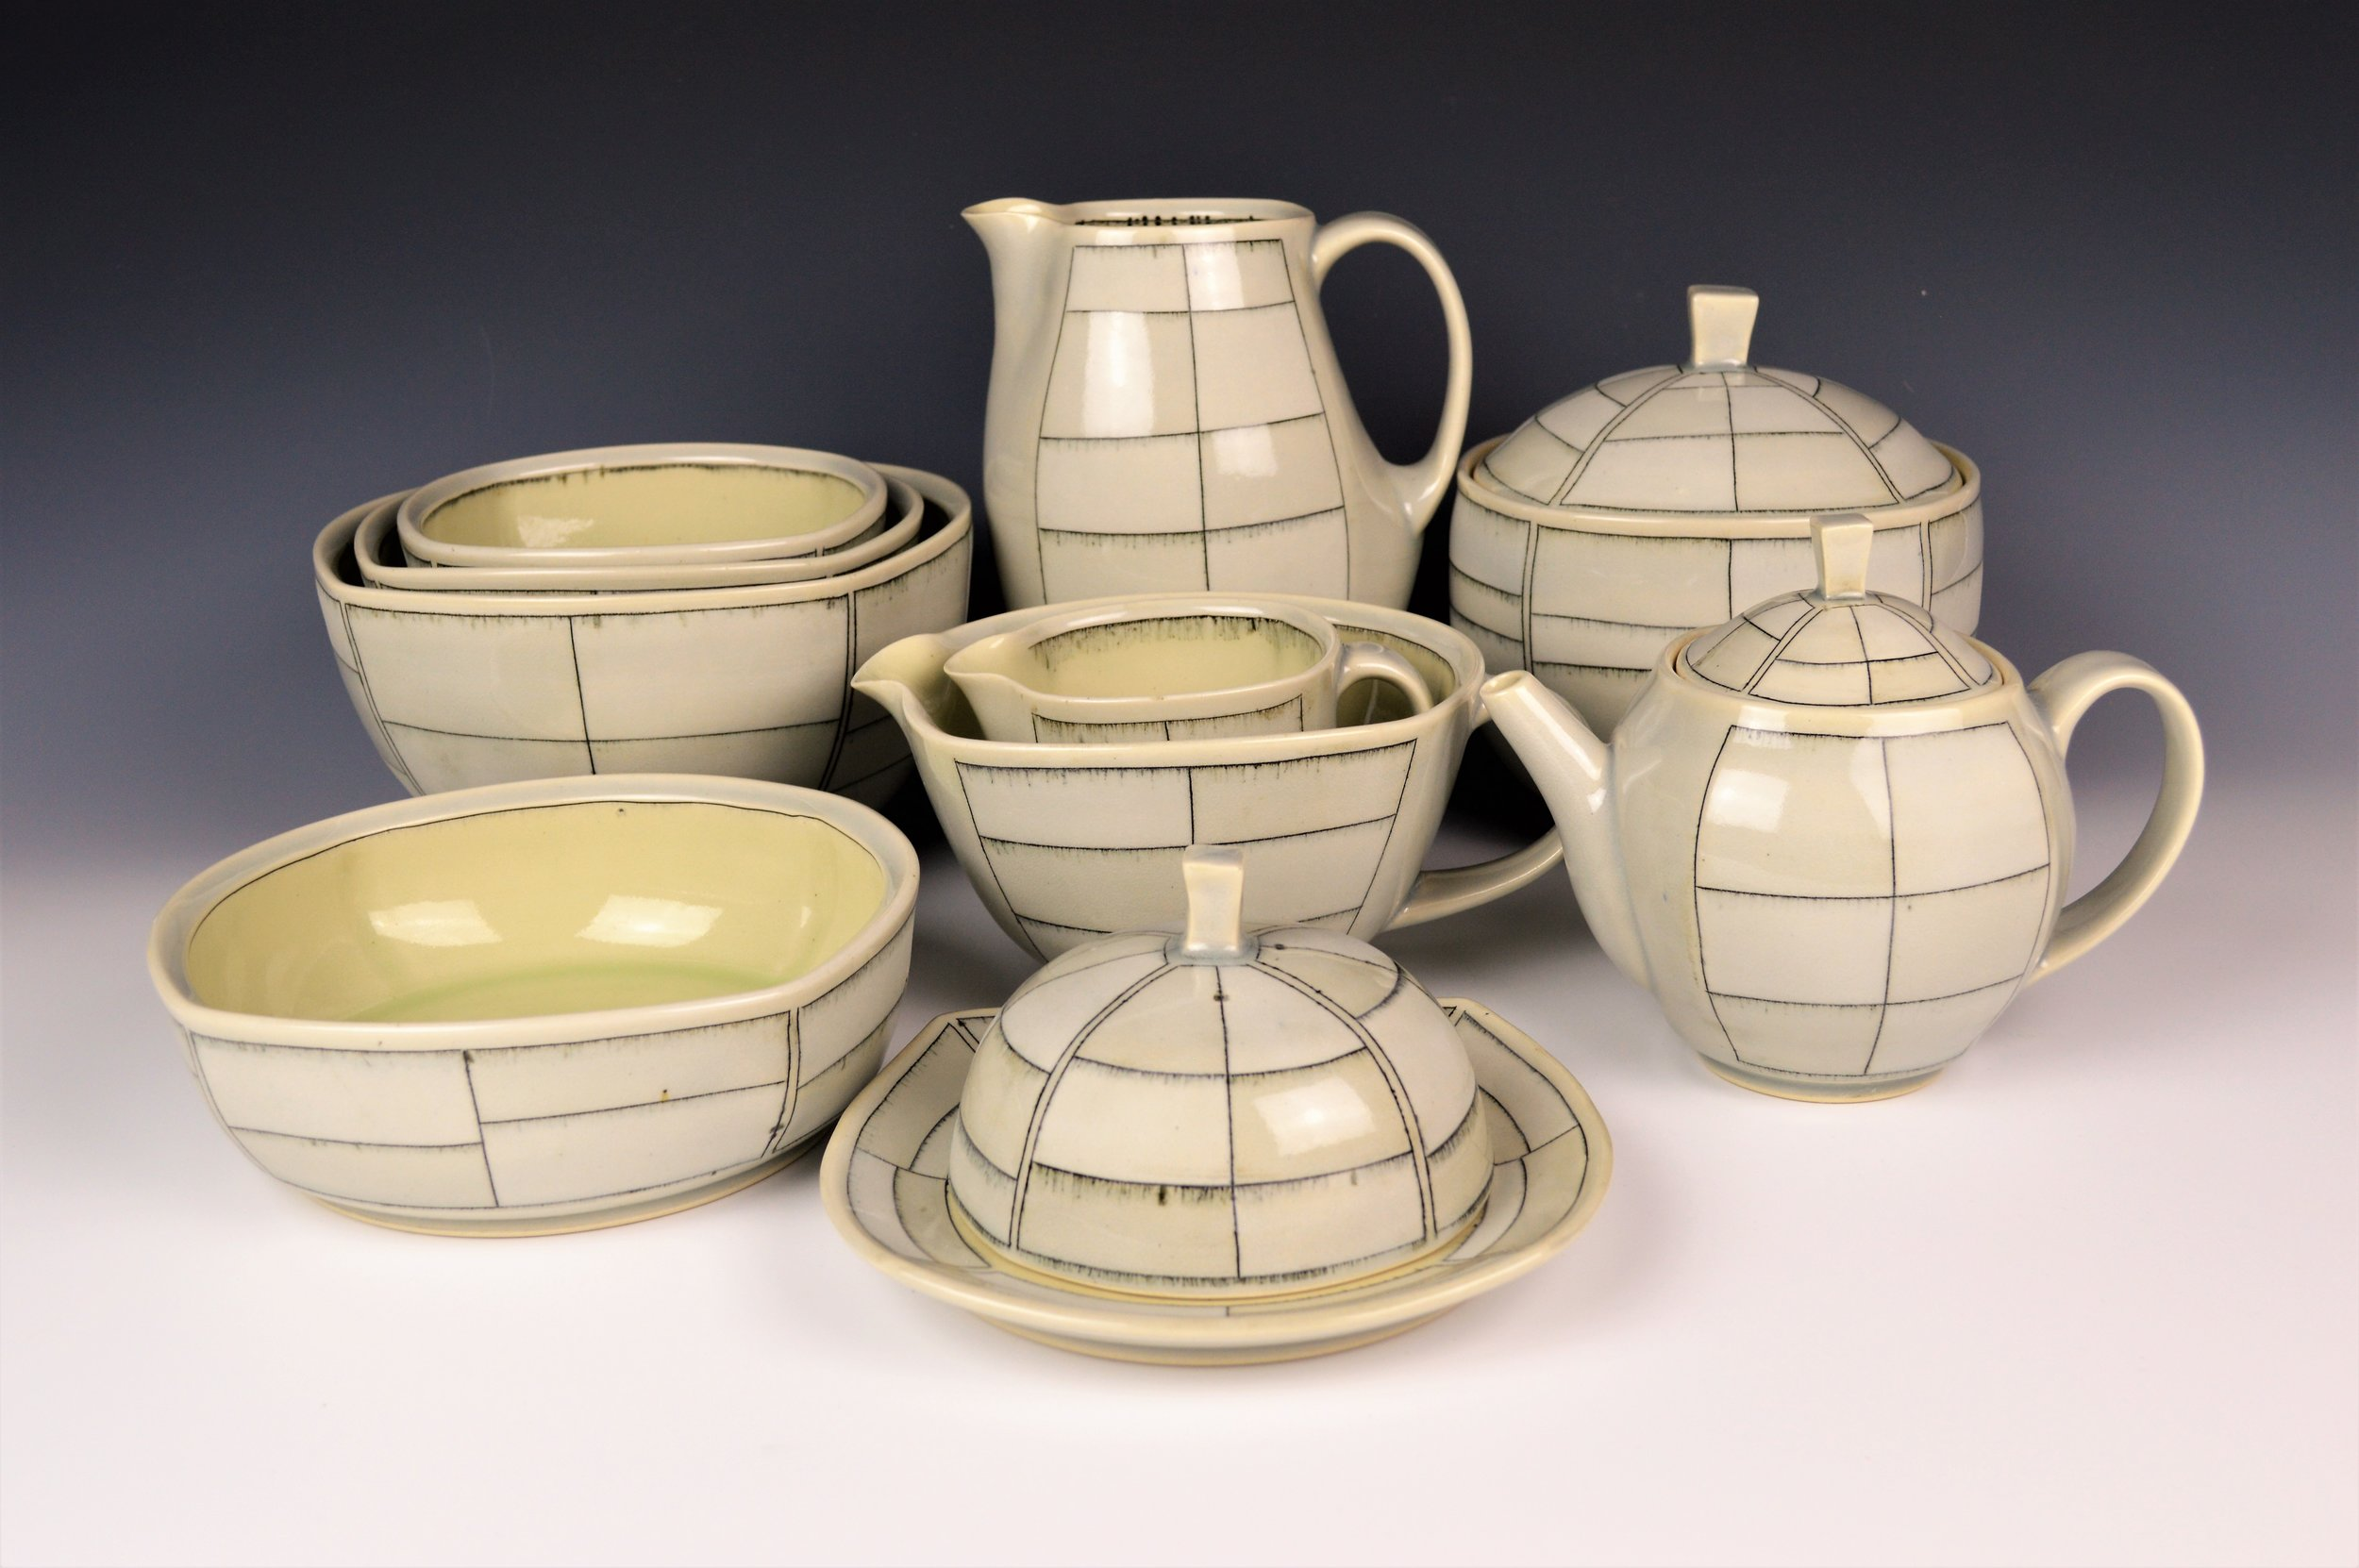 Serving Pieces from Sandblasted Set